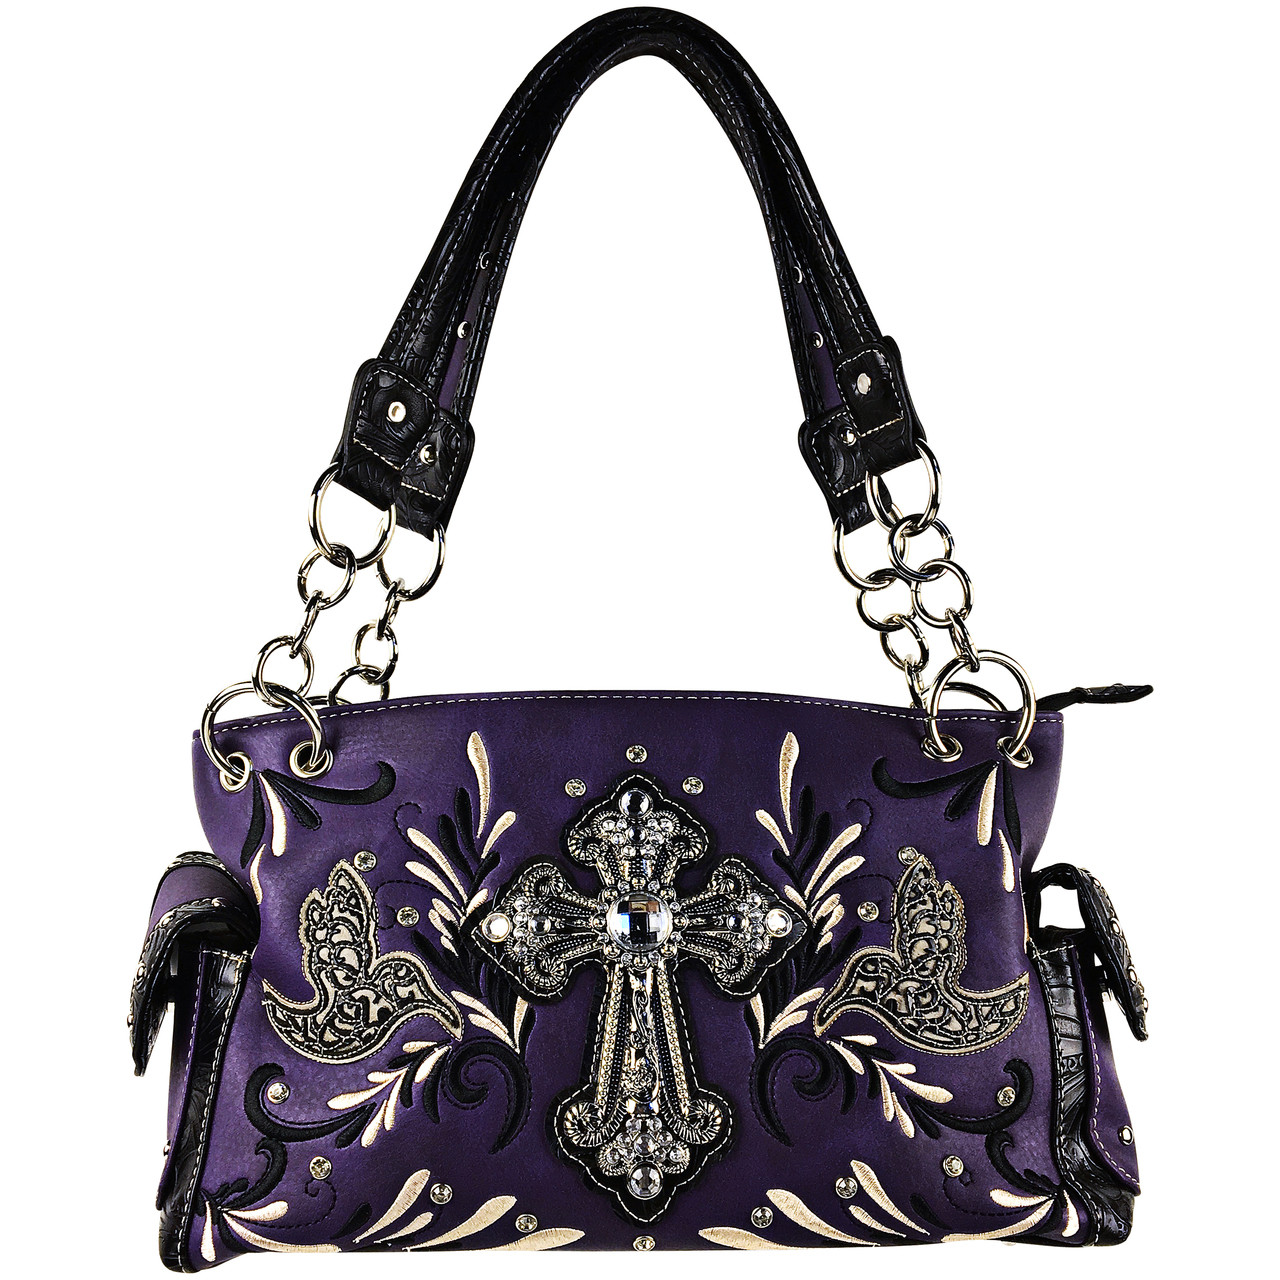 PURPLE RHINESTONE STUDDED CROSS LOOK SHOULDER HANDBAG